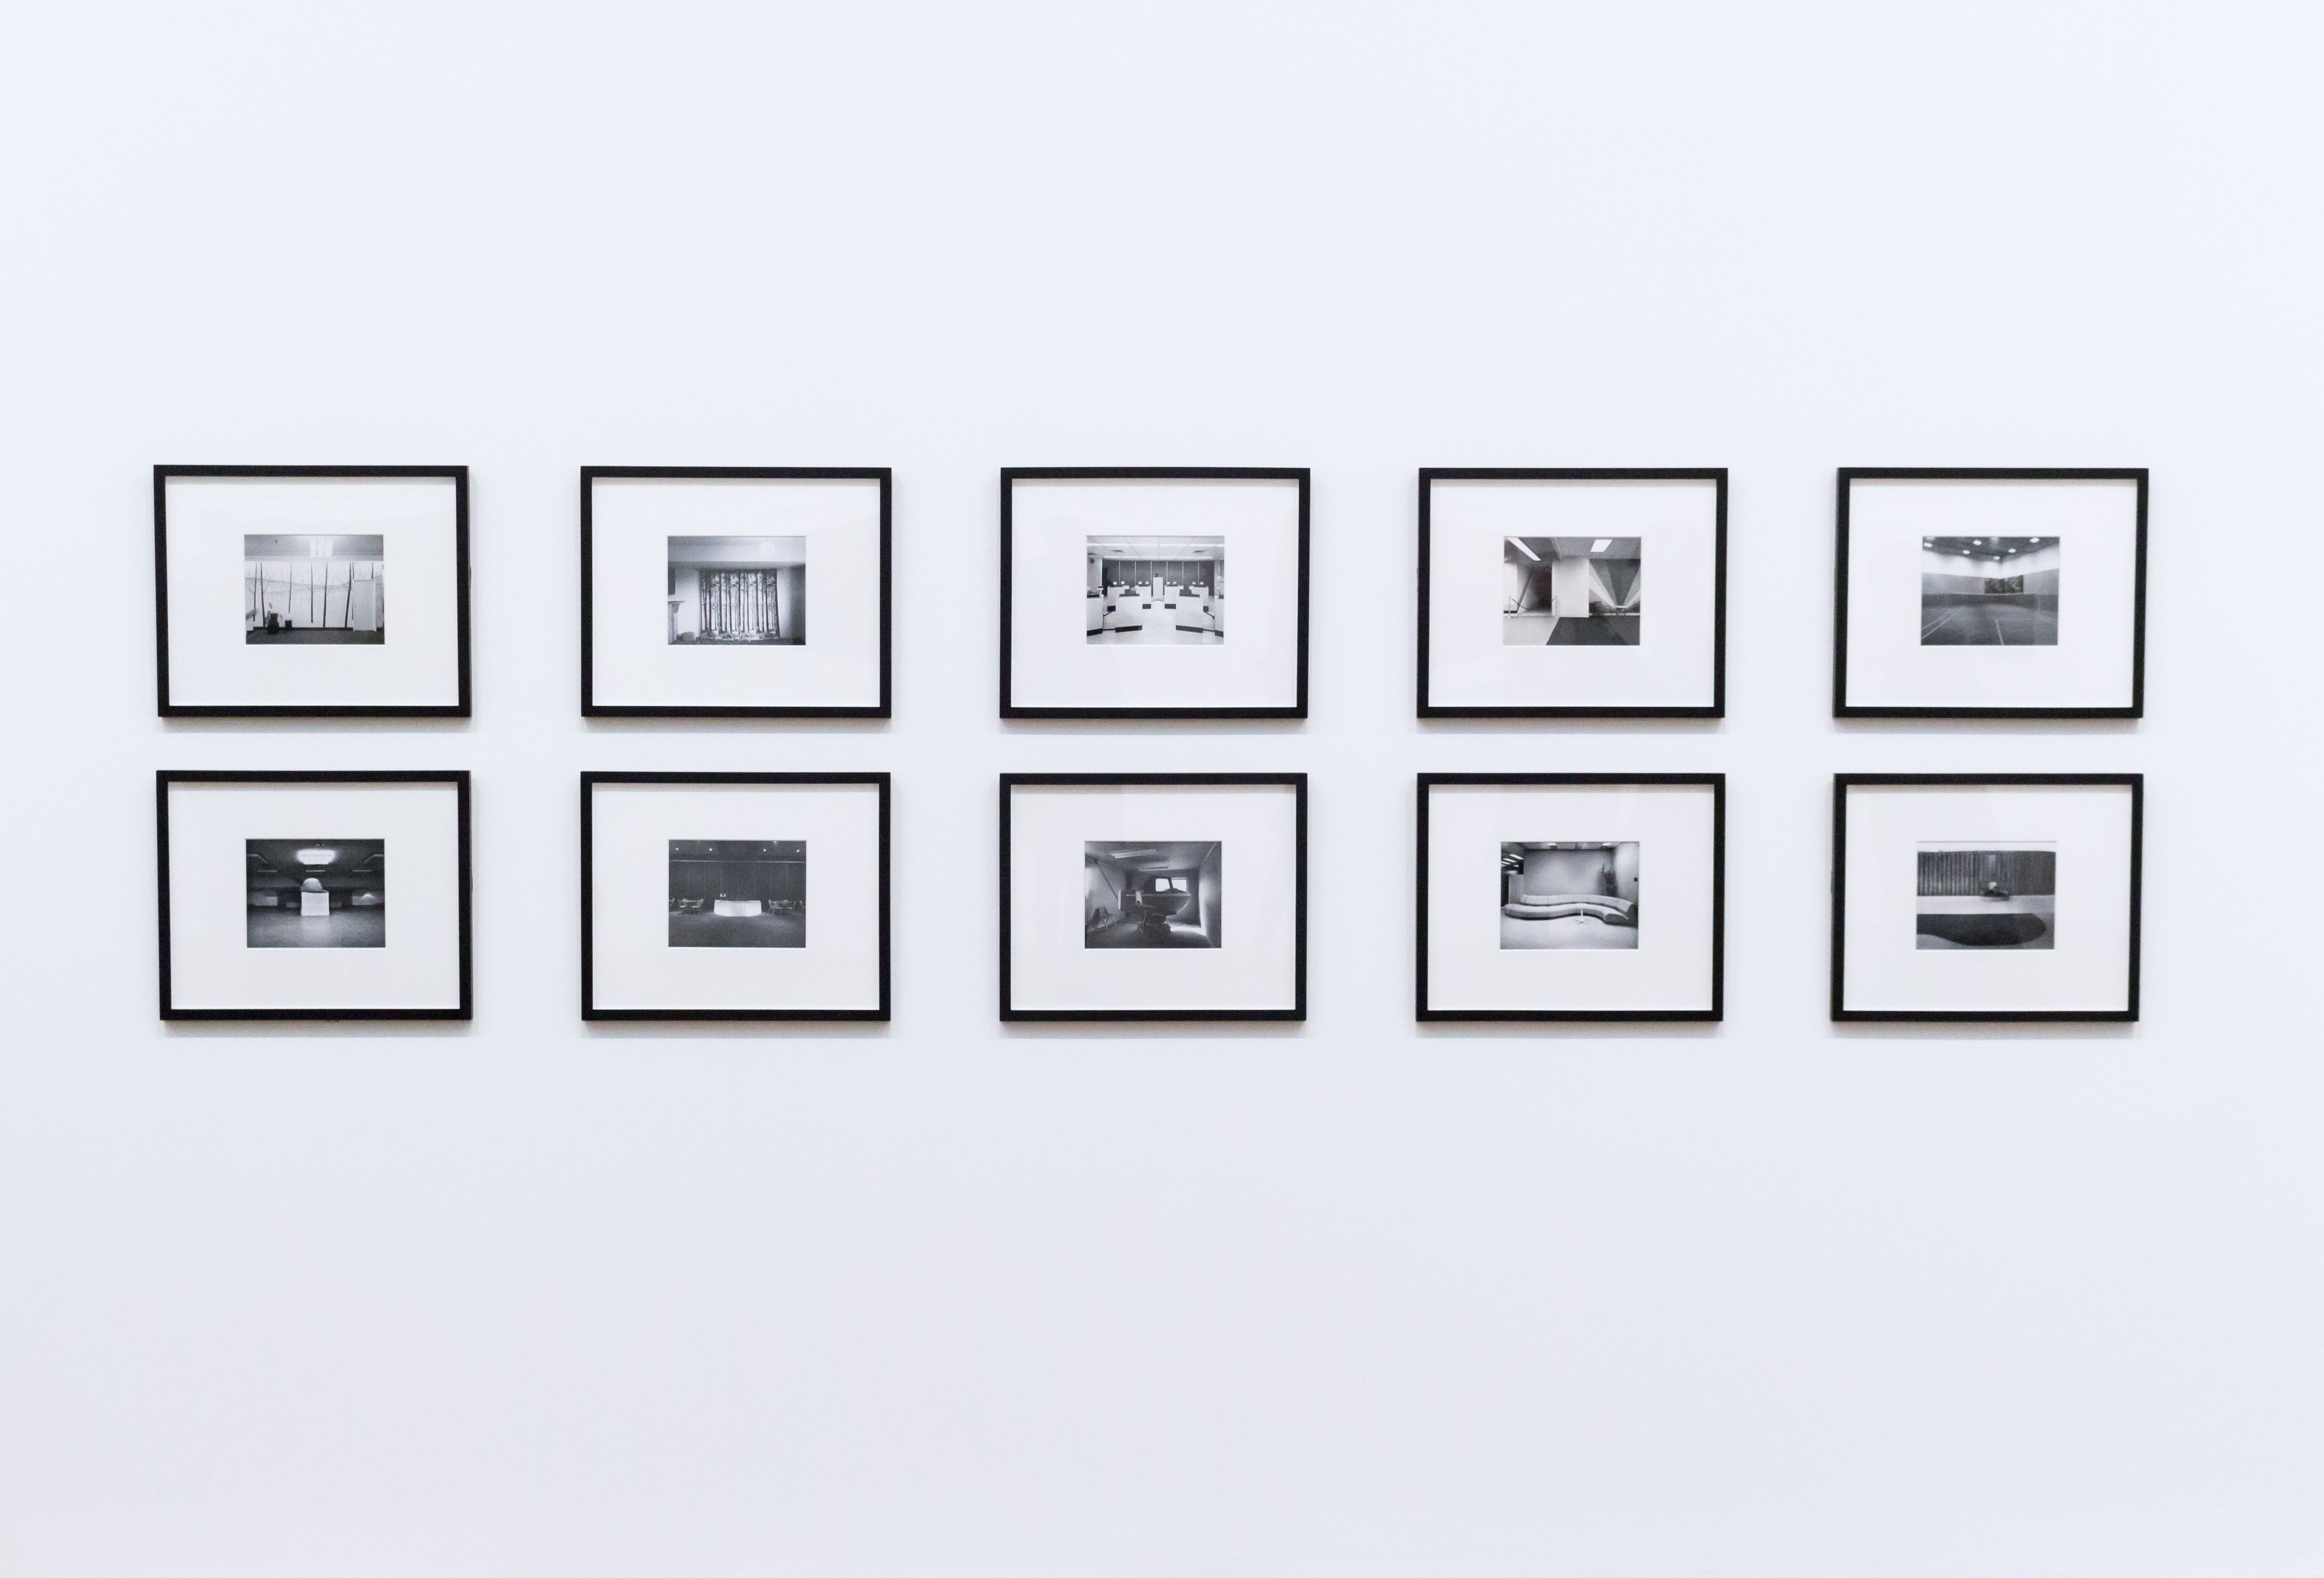 Free photo: Frames on White Background - Paper, Picture frame ...